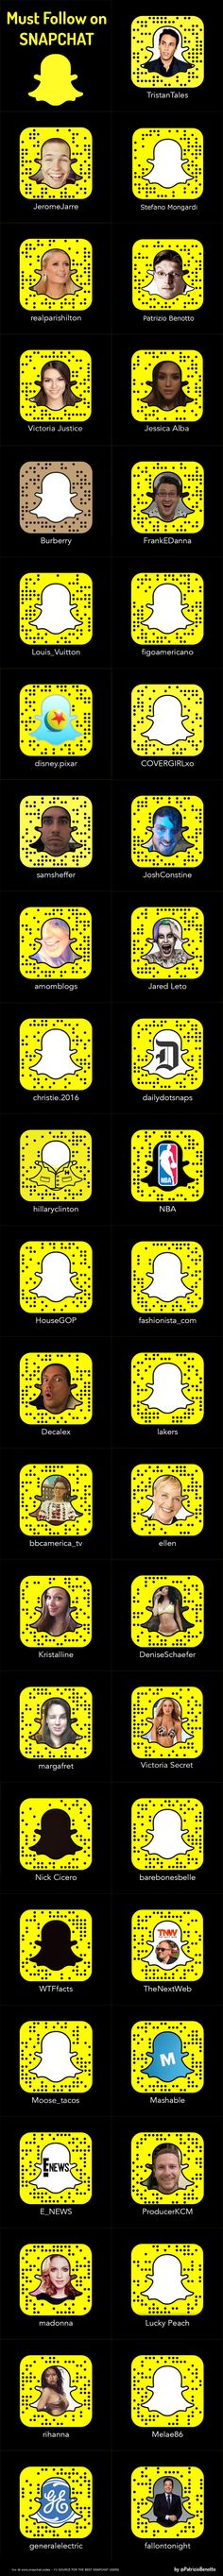 35 Must Follow di #snapchat in un lungo elenco di #snapcode --- http://patriziobenotto.tumblr.com/post/143982567705/must-follow-on-snapchat